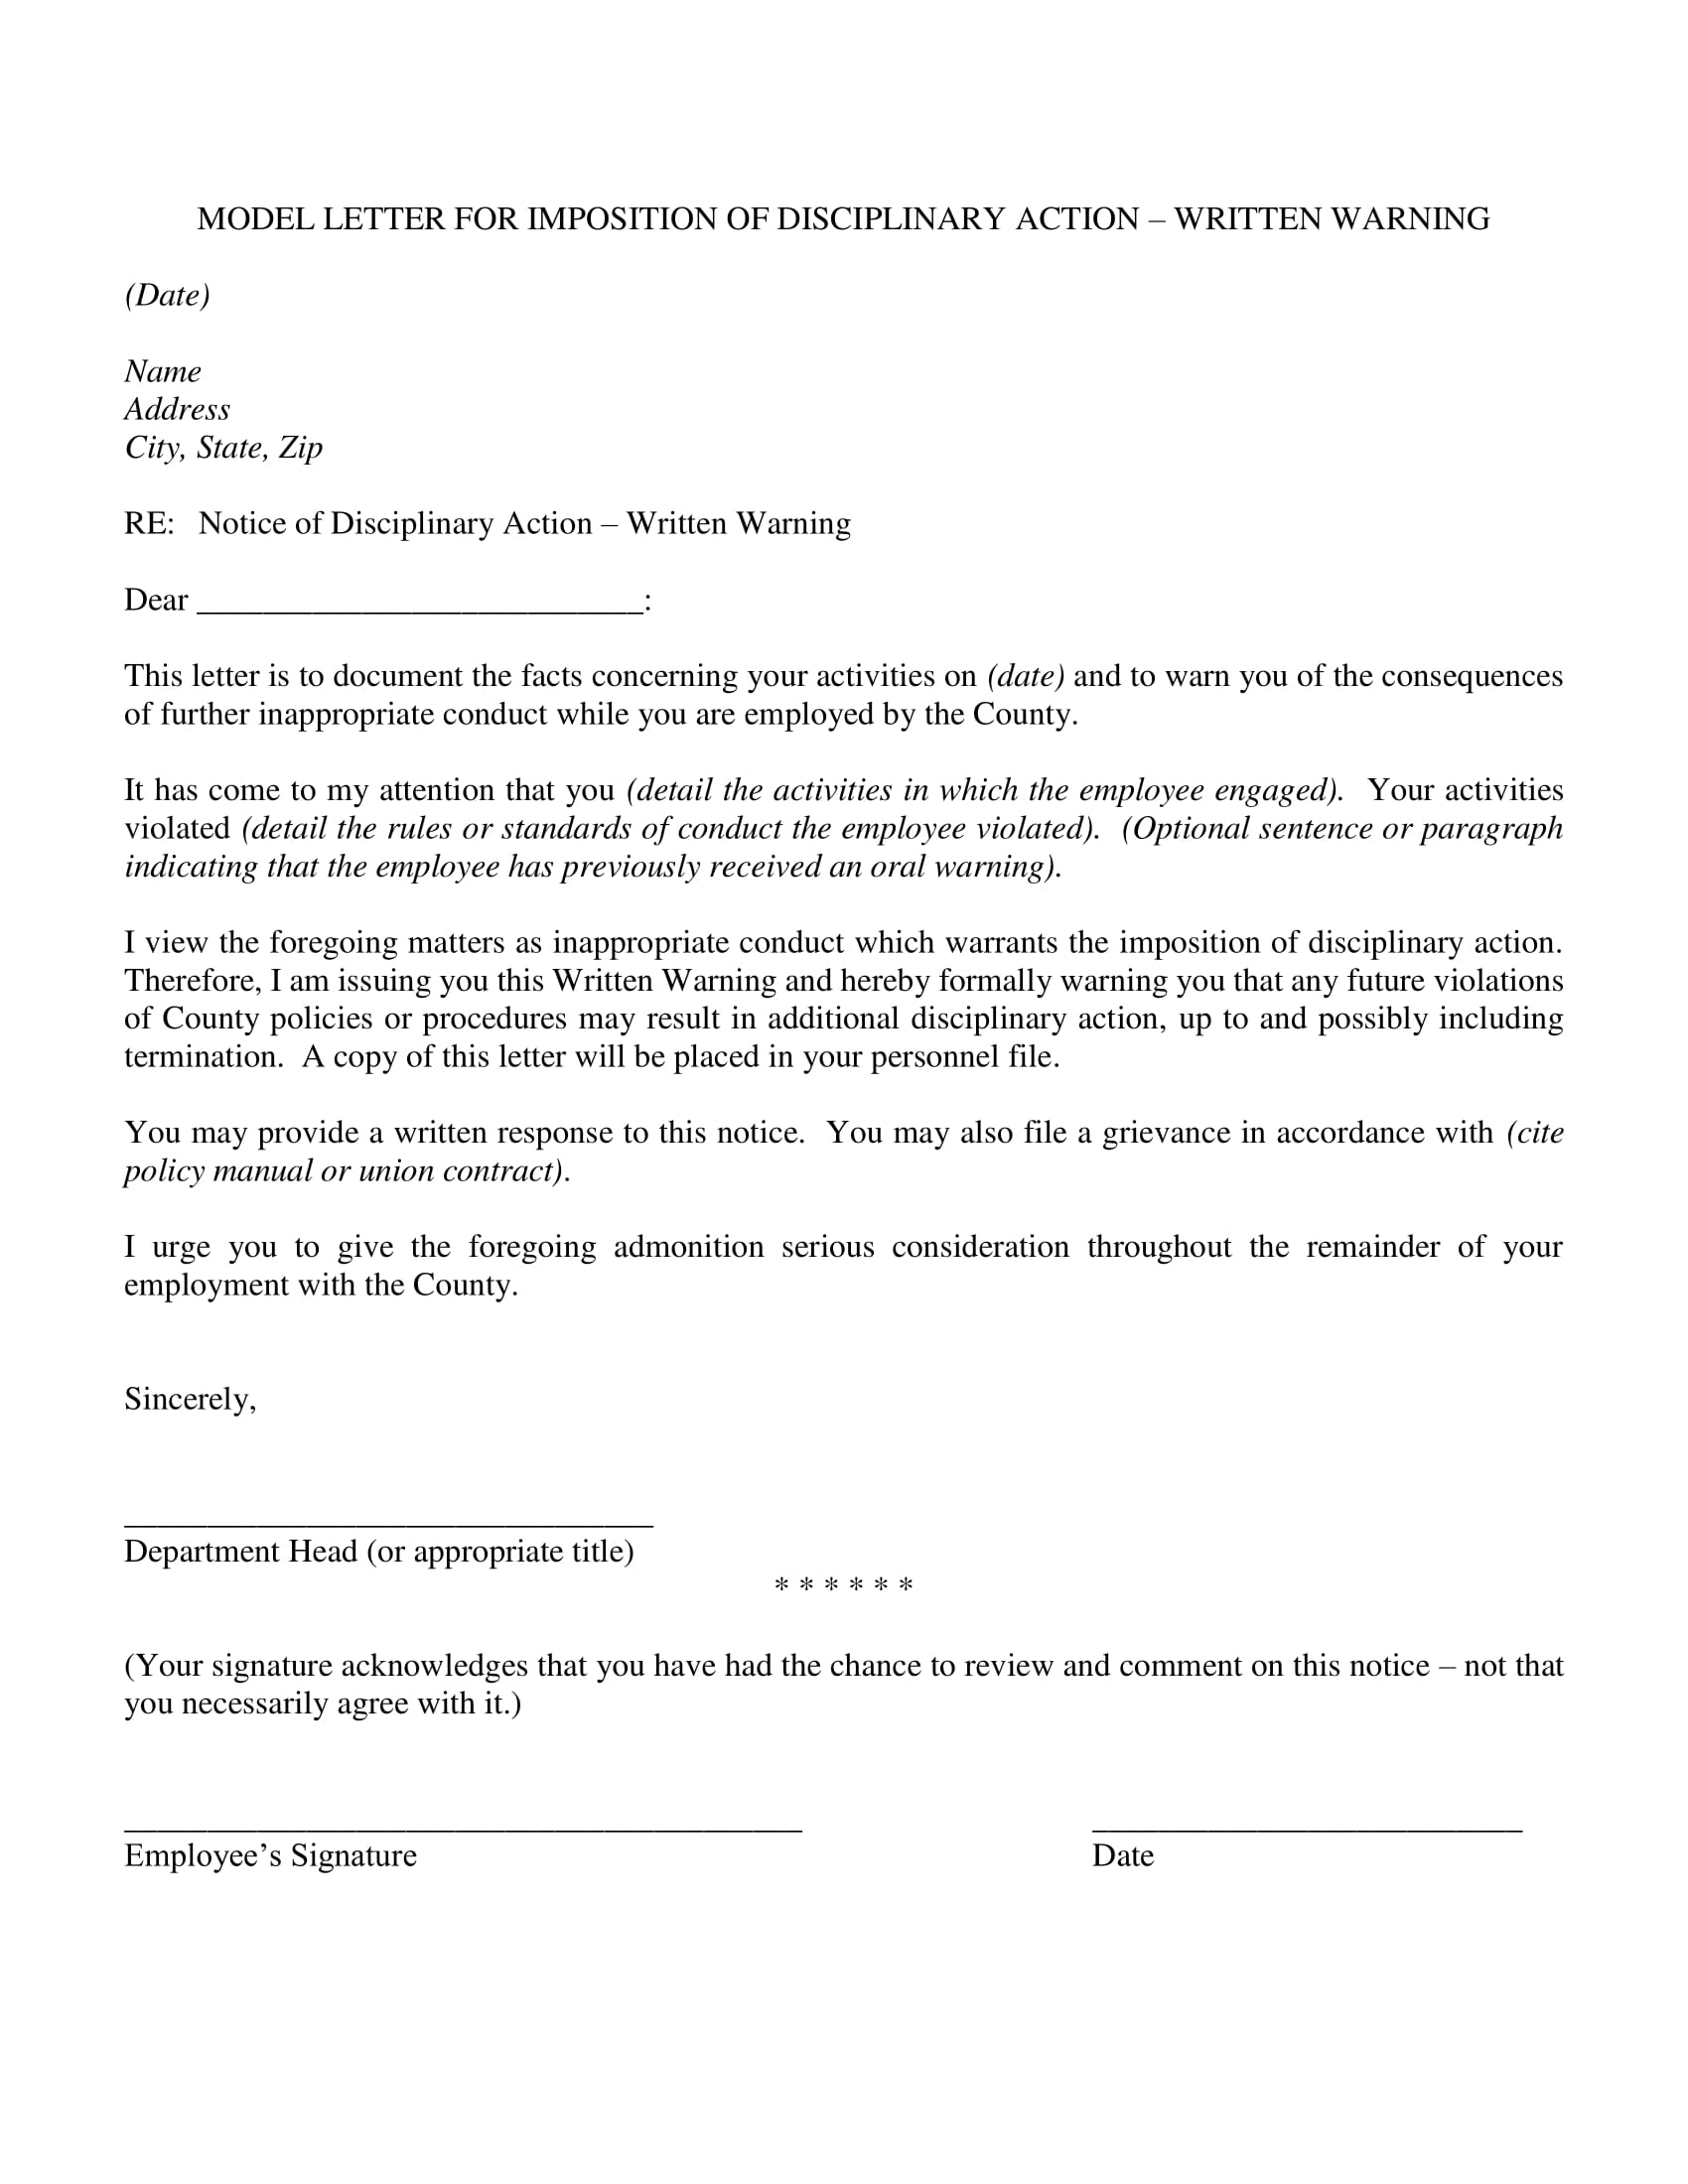 employee written warning letter for imposition of disciplinary action